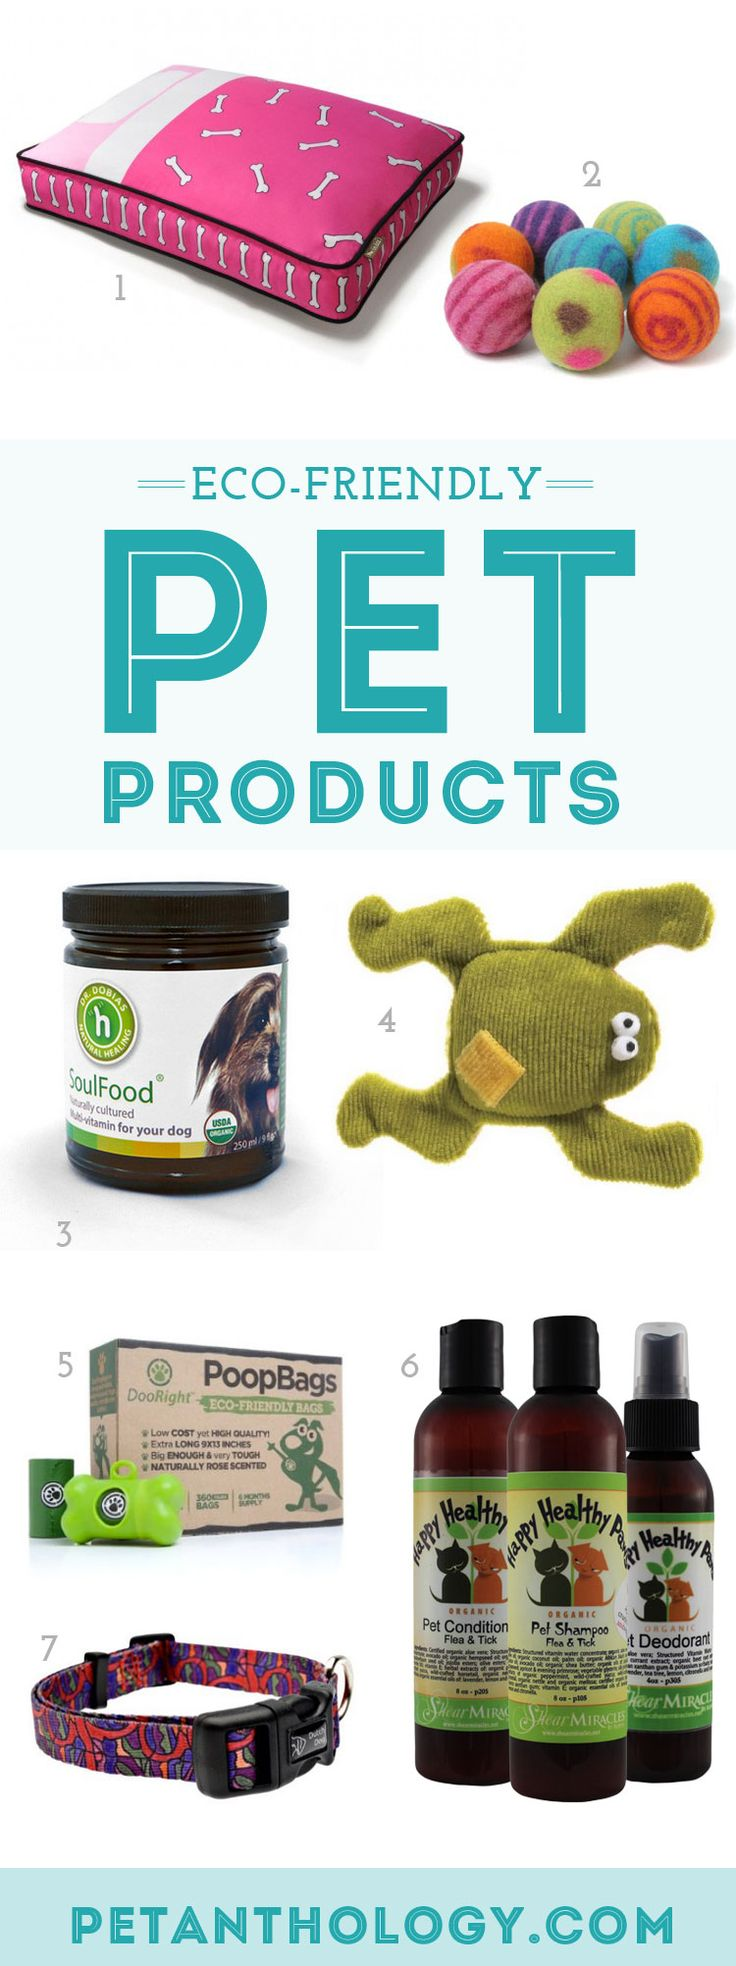 Eco-friendly Pet Products   The Pet Anthology  #organic #pets